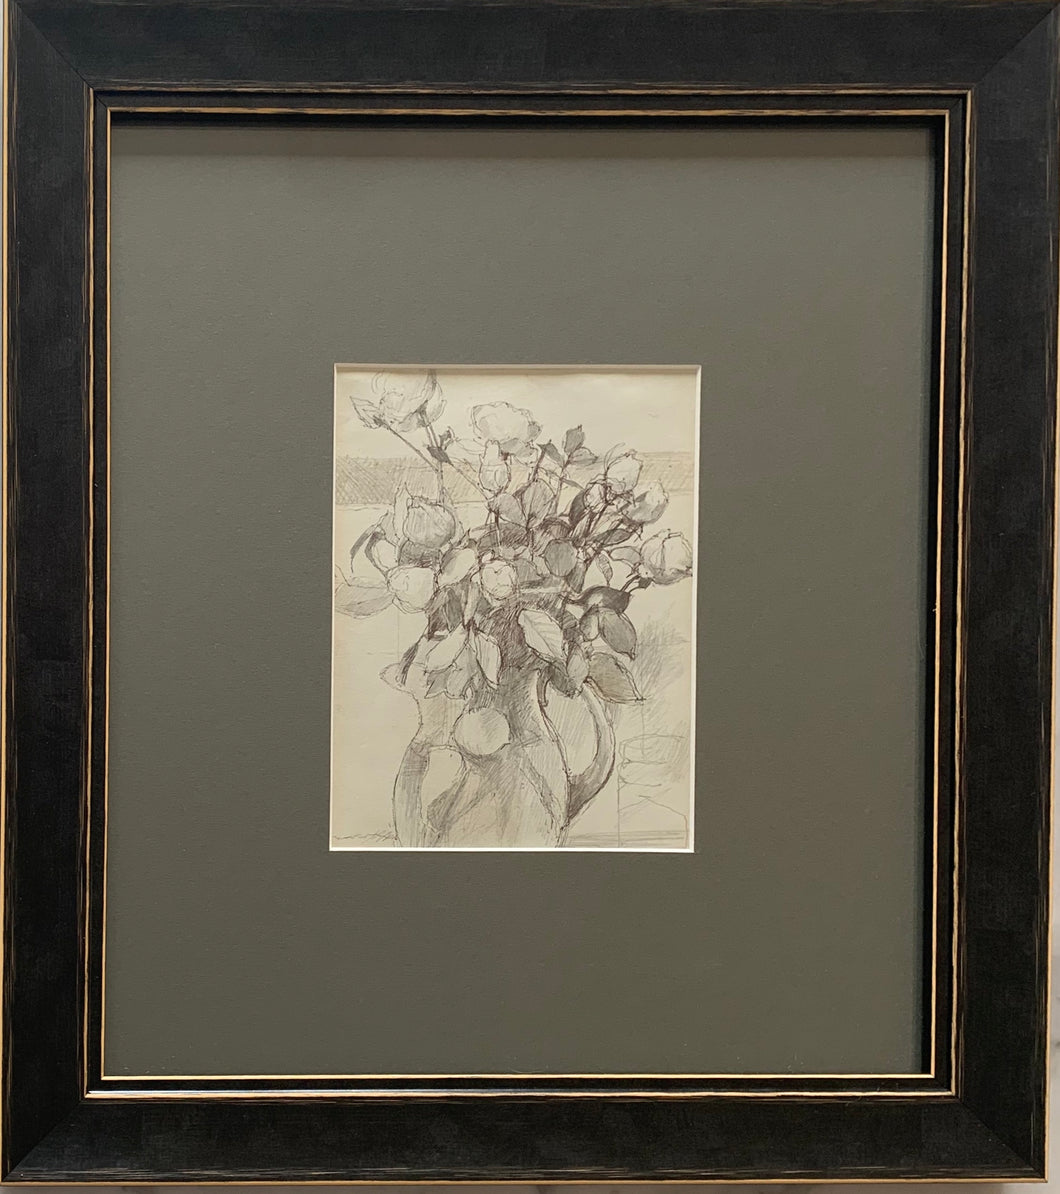 Pencil drawing on paper: A jug if flowers (artist Tom Carr)